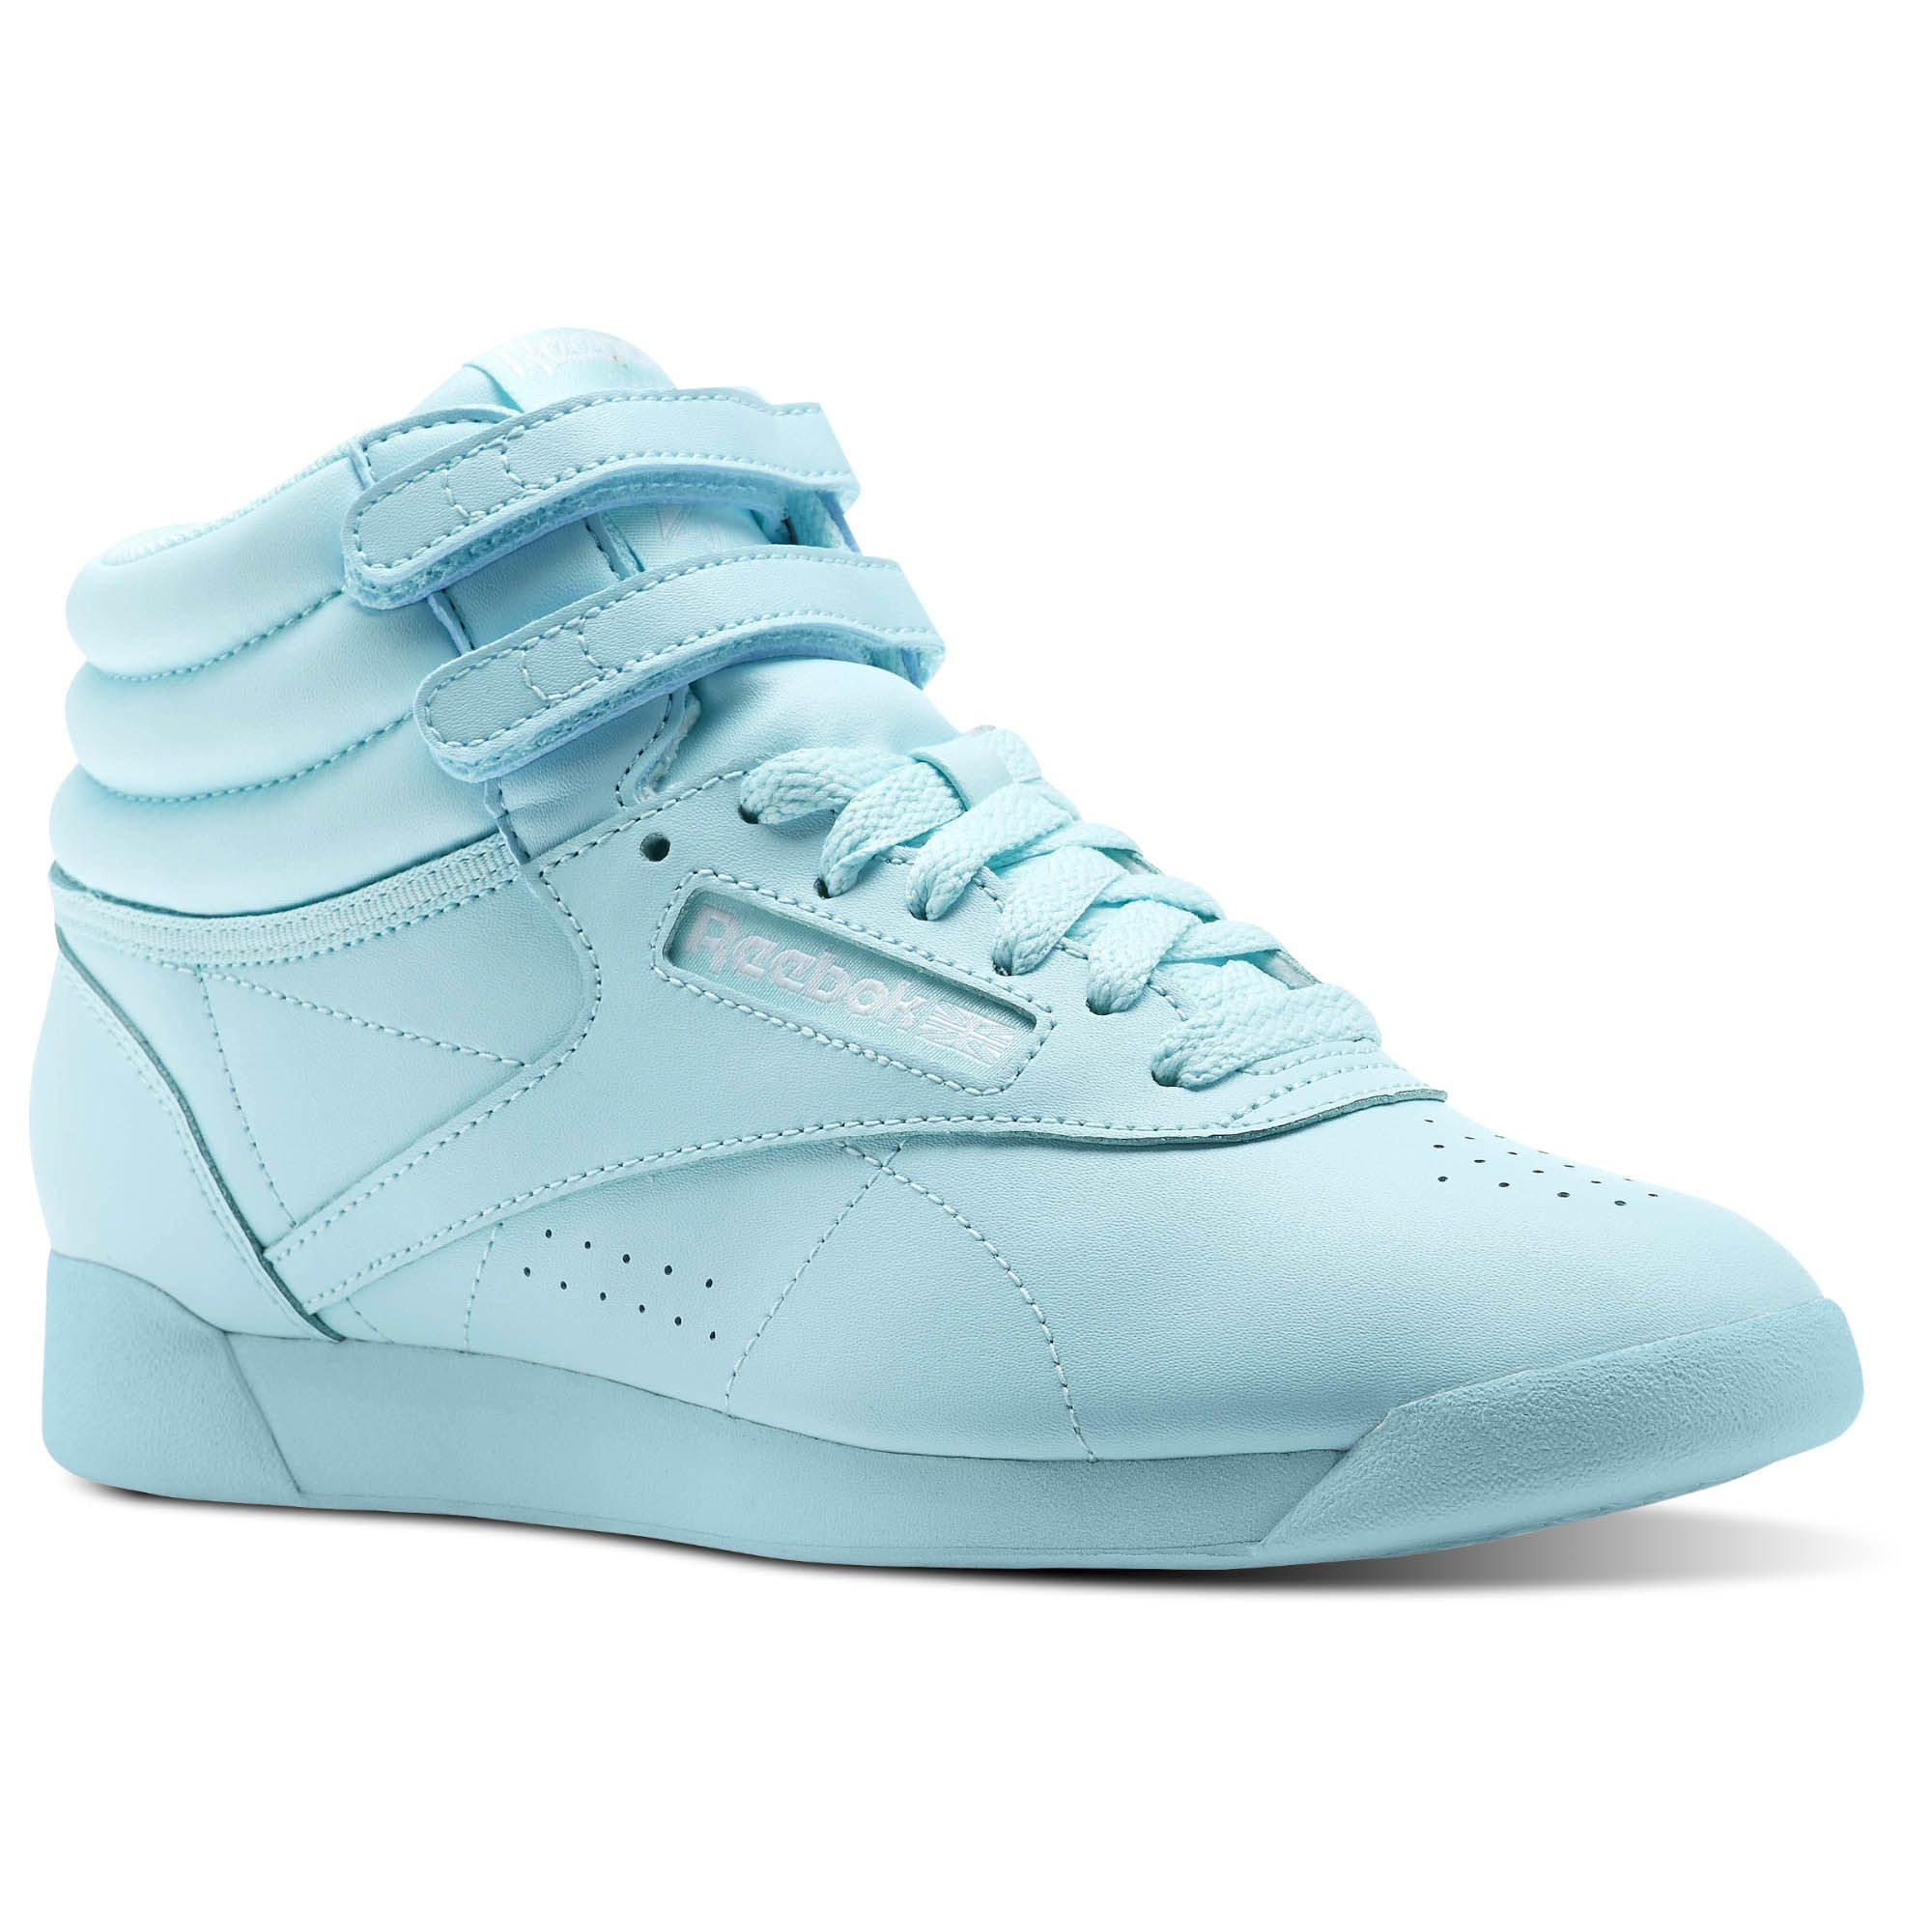 With Poppin Personality These Women S Freestyle High Colors Sneakers Show Your Individuality The Sof Reebok Freestyle Womens High Top Sneakers Sneakers Blue